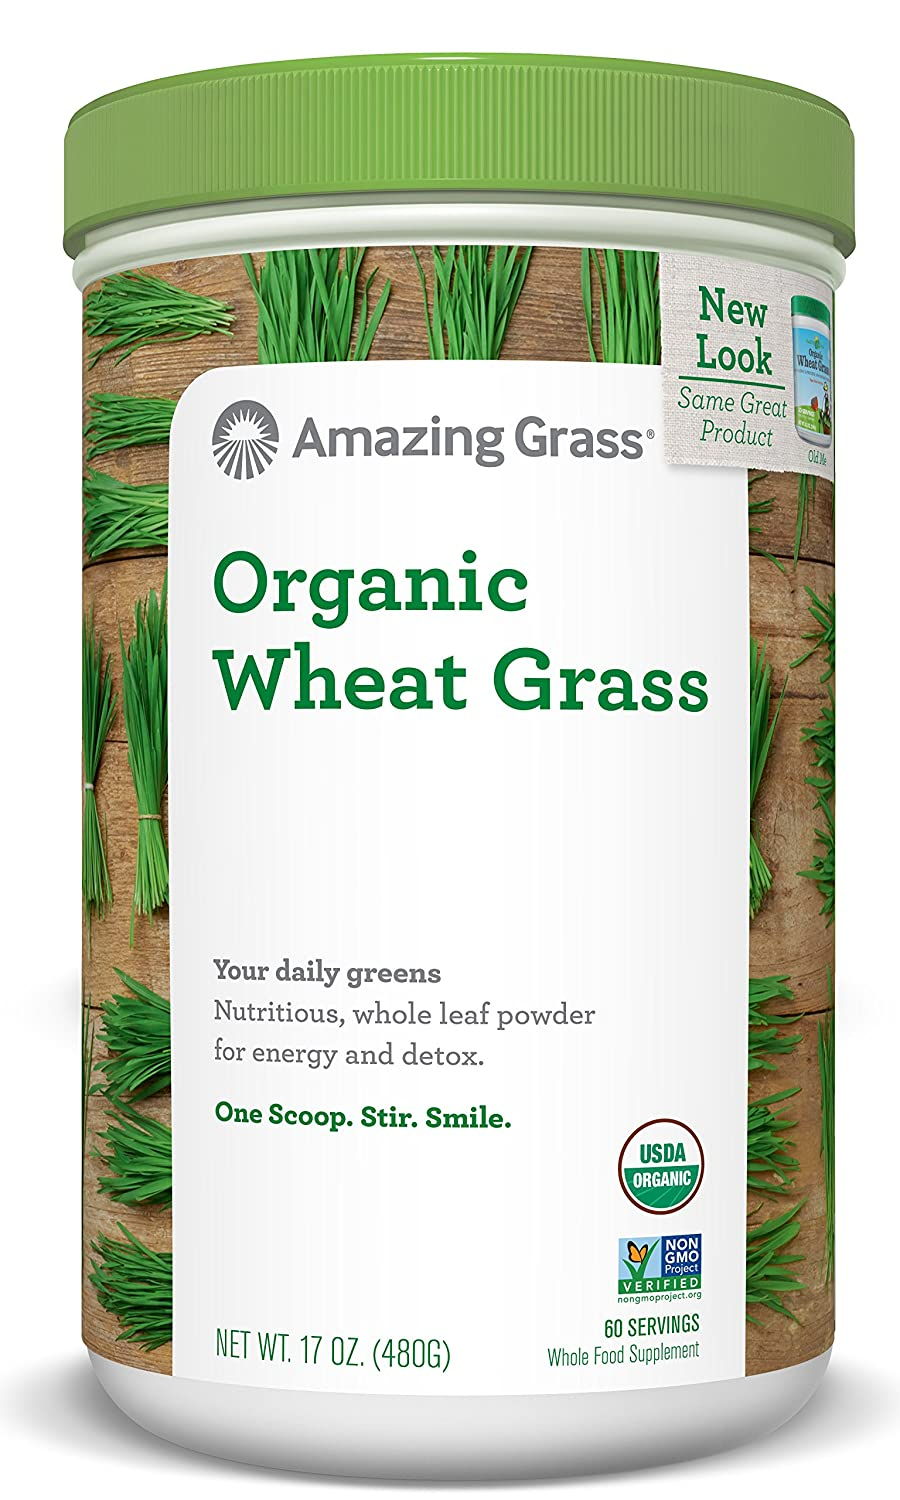 Amazing Grass- Organic Wheatgrass Powder in 60 Servings